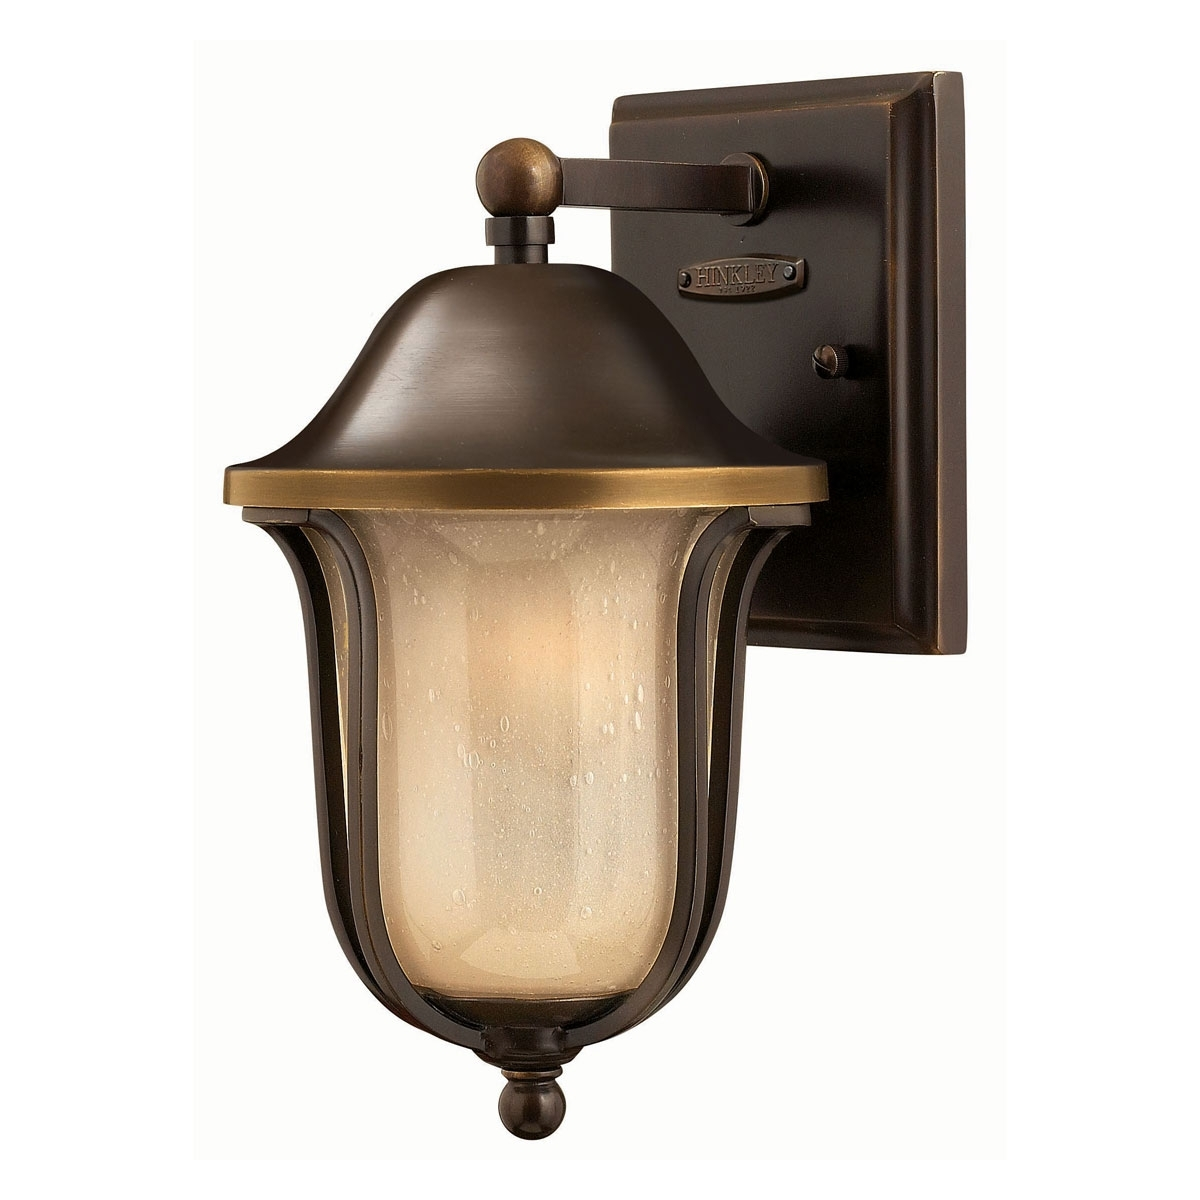 2636Ob – Mini Outdoor Wall Light, Bolla Olde Bronze | Hinkley In Brass Porch Hinkley Lighting (#2 of 15)